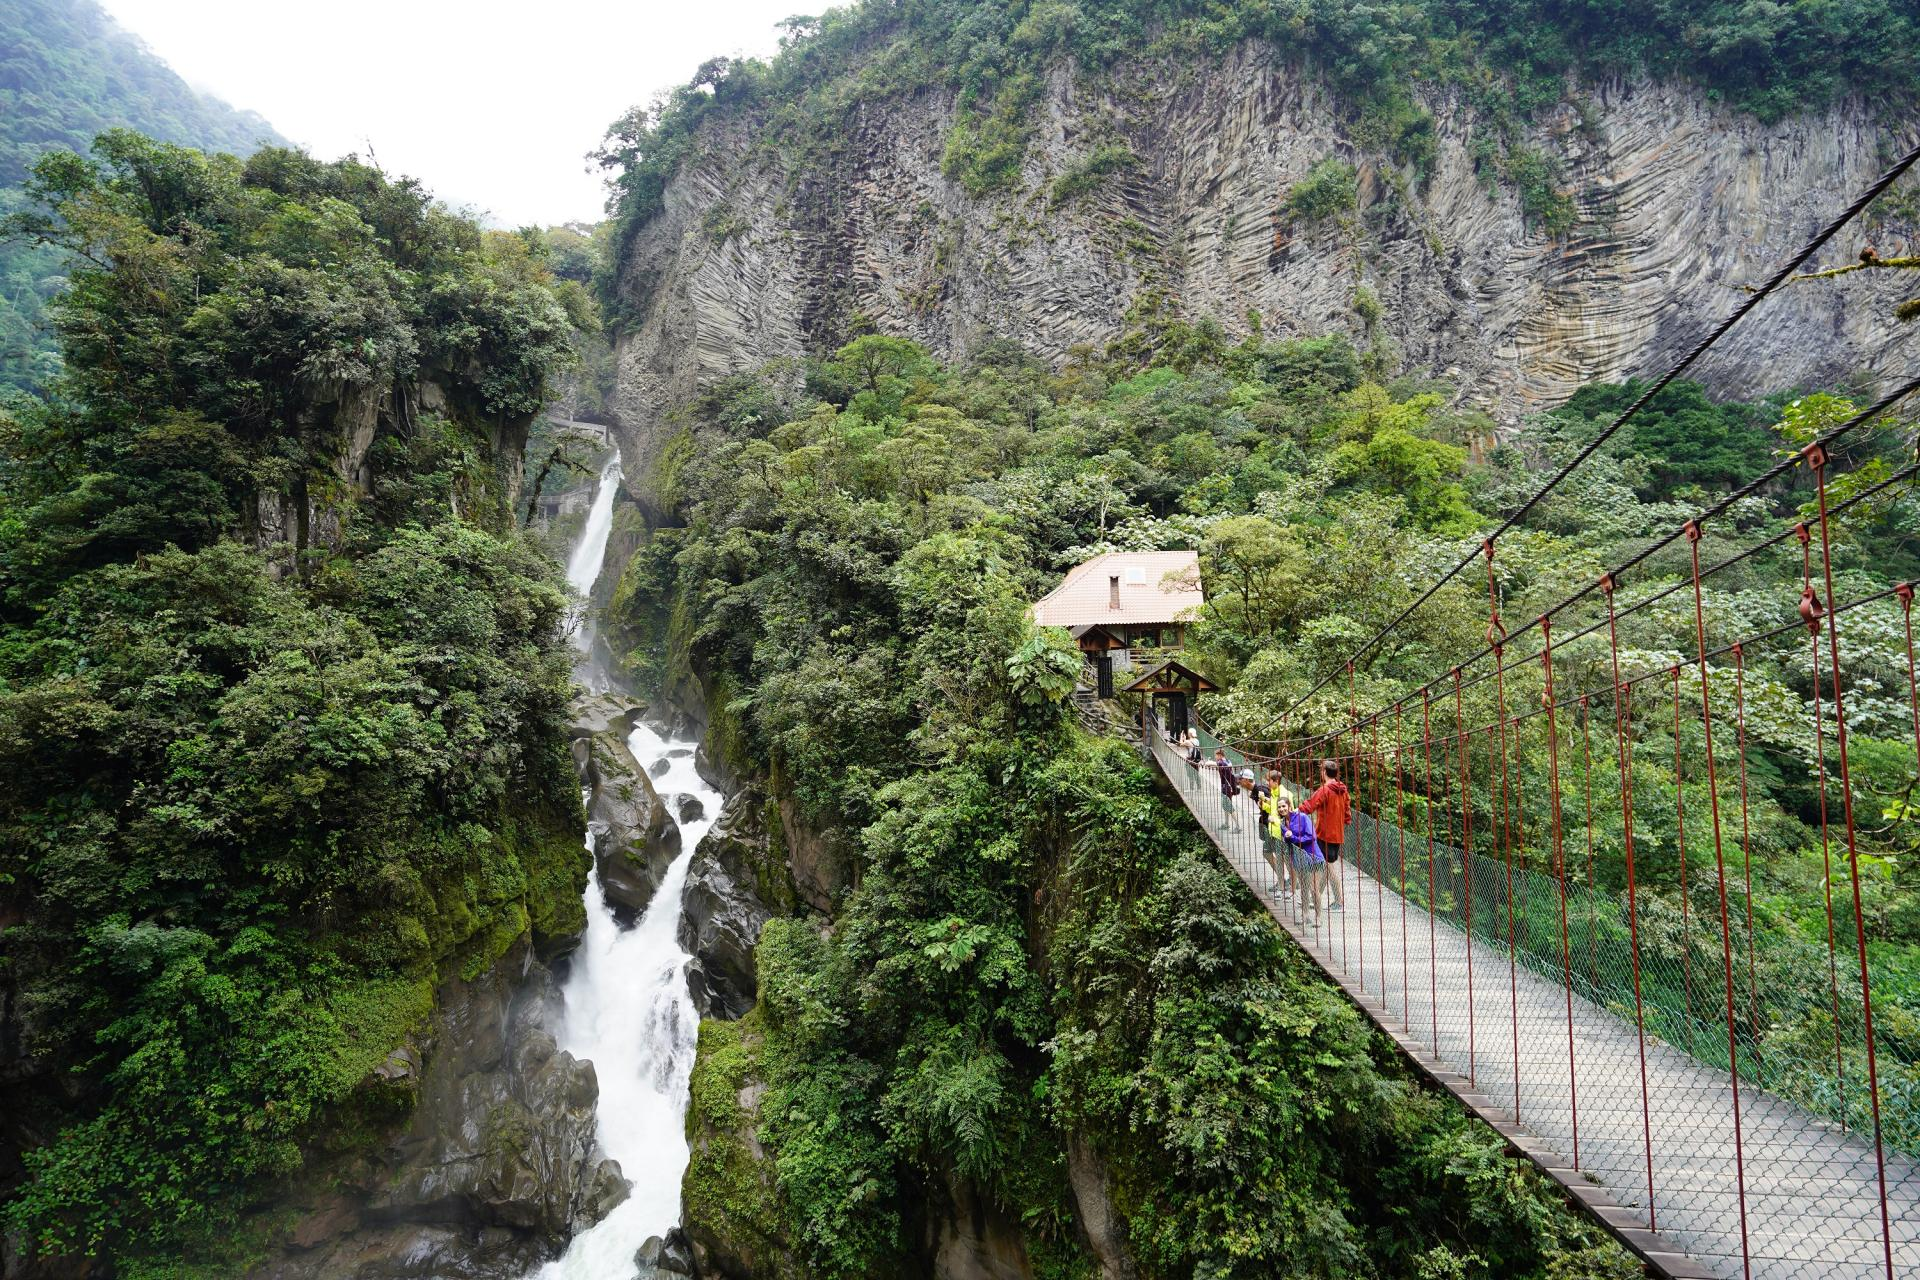 Ecuador multi sport adventure tour for families and teens